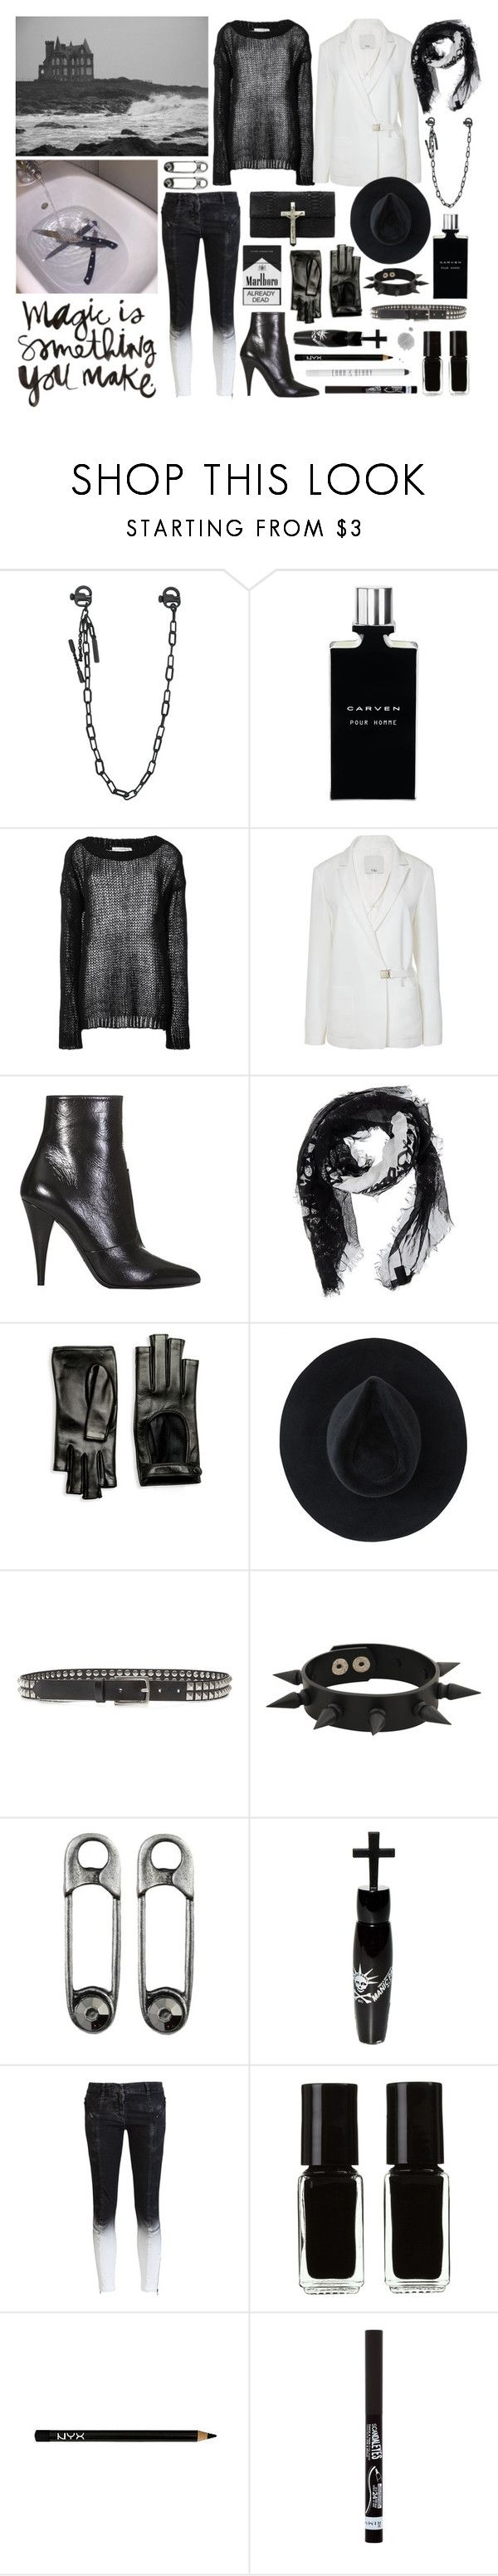 """""""pain in your eyes: you are my ocean"""" by nothingisnormal ❤ liked on Polyvore featuring Dsquared2, Carven, Faith Connexion, TIBI, Yves Saint Laurent, Gucci, Ryan Roche, rag & bone, Forever 21 and Manic Panic NYC"""